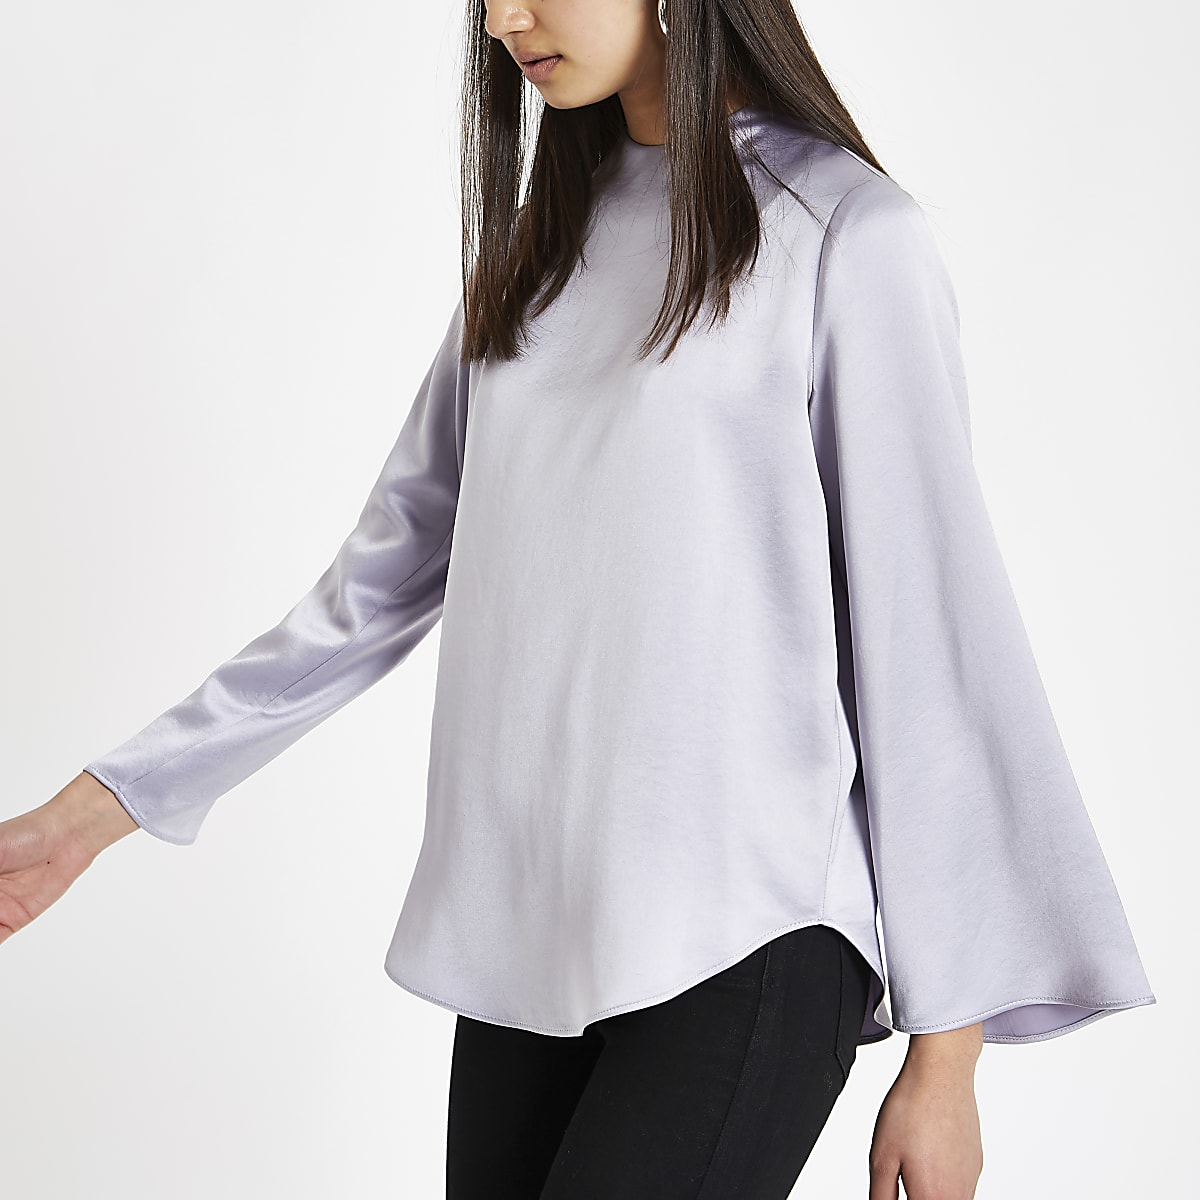 Purple satin long sleeve top